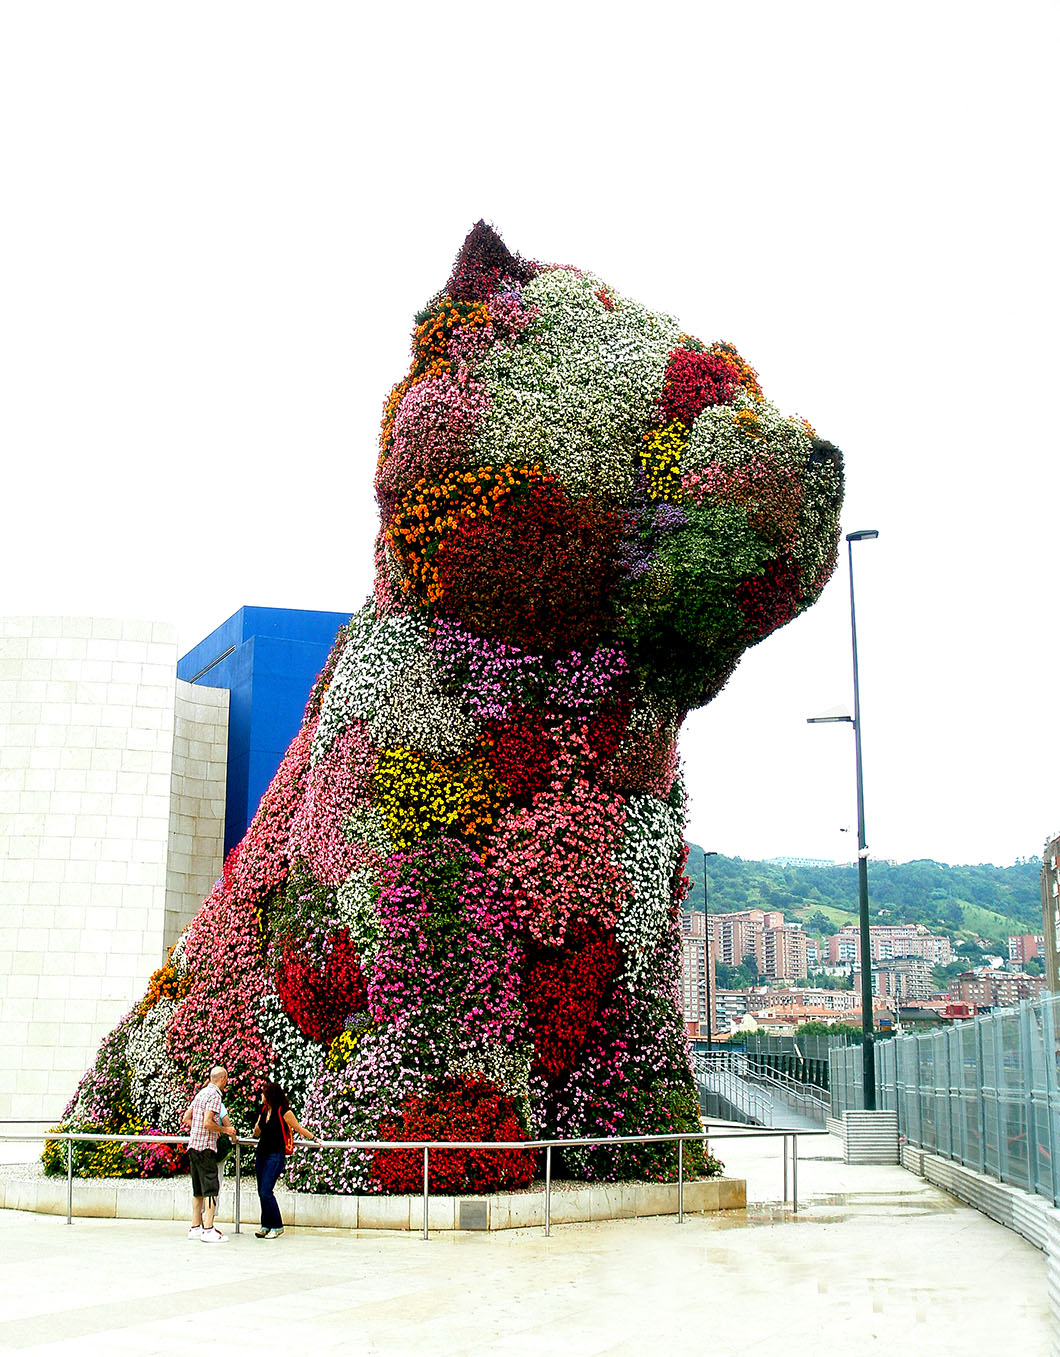 Jeff Koons' Puppy